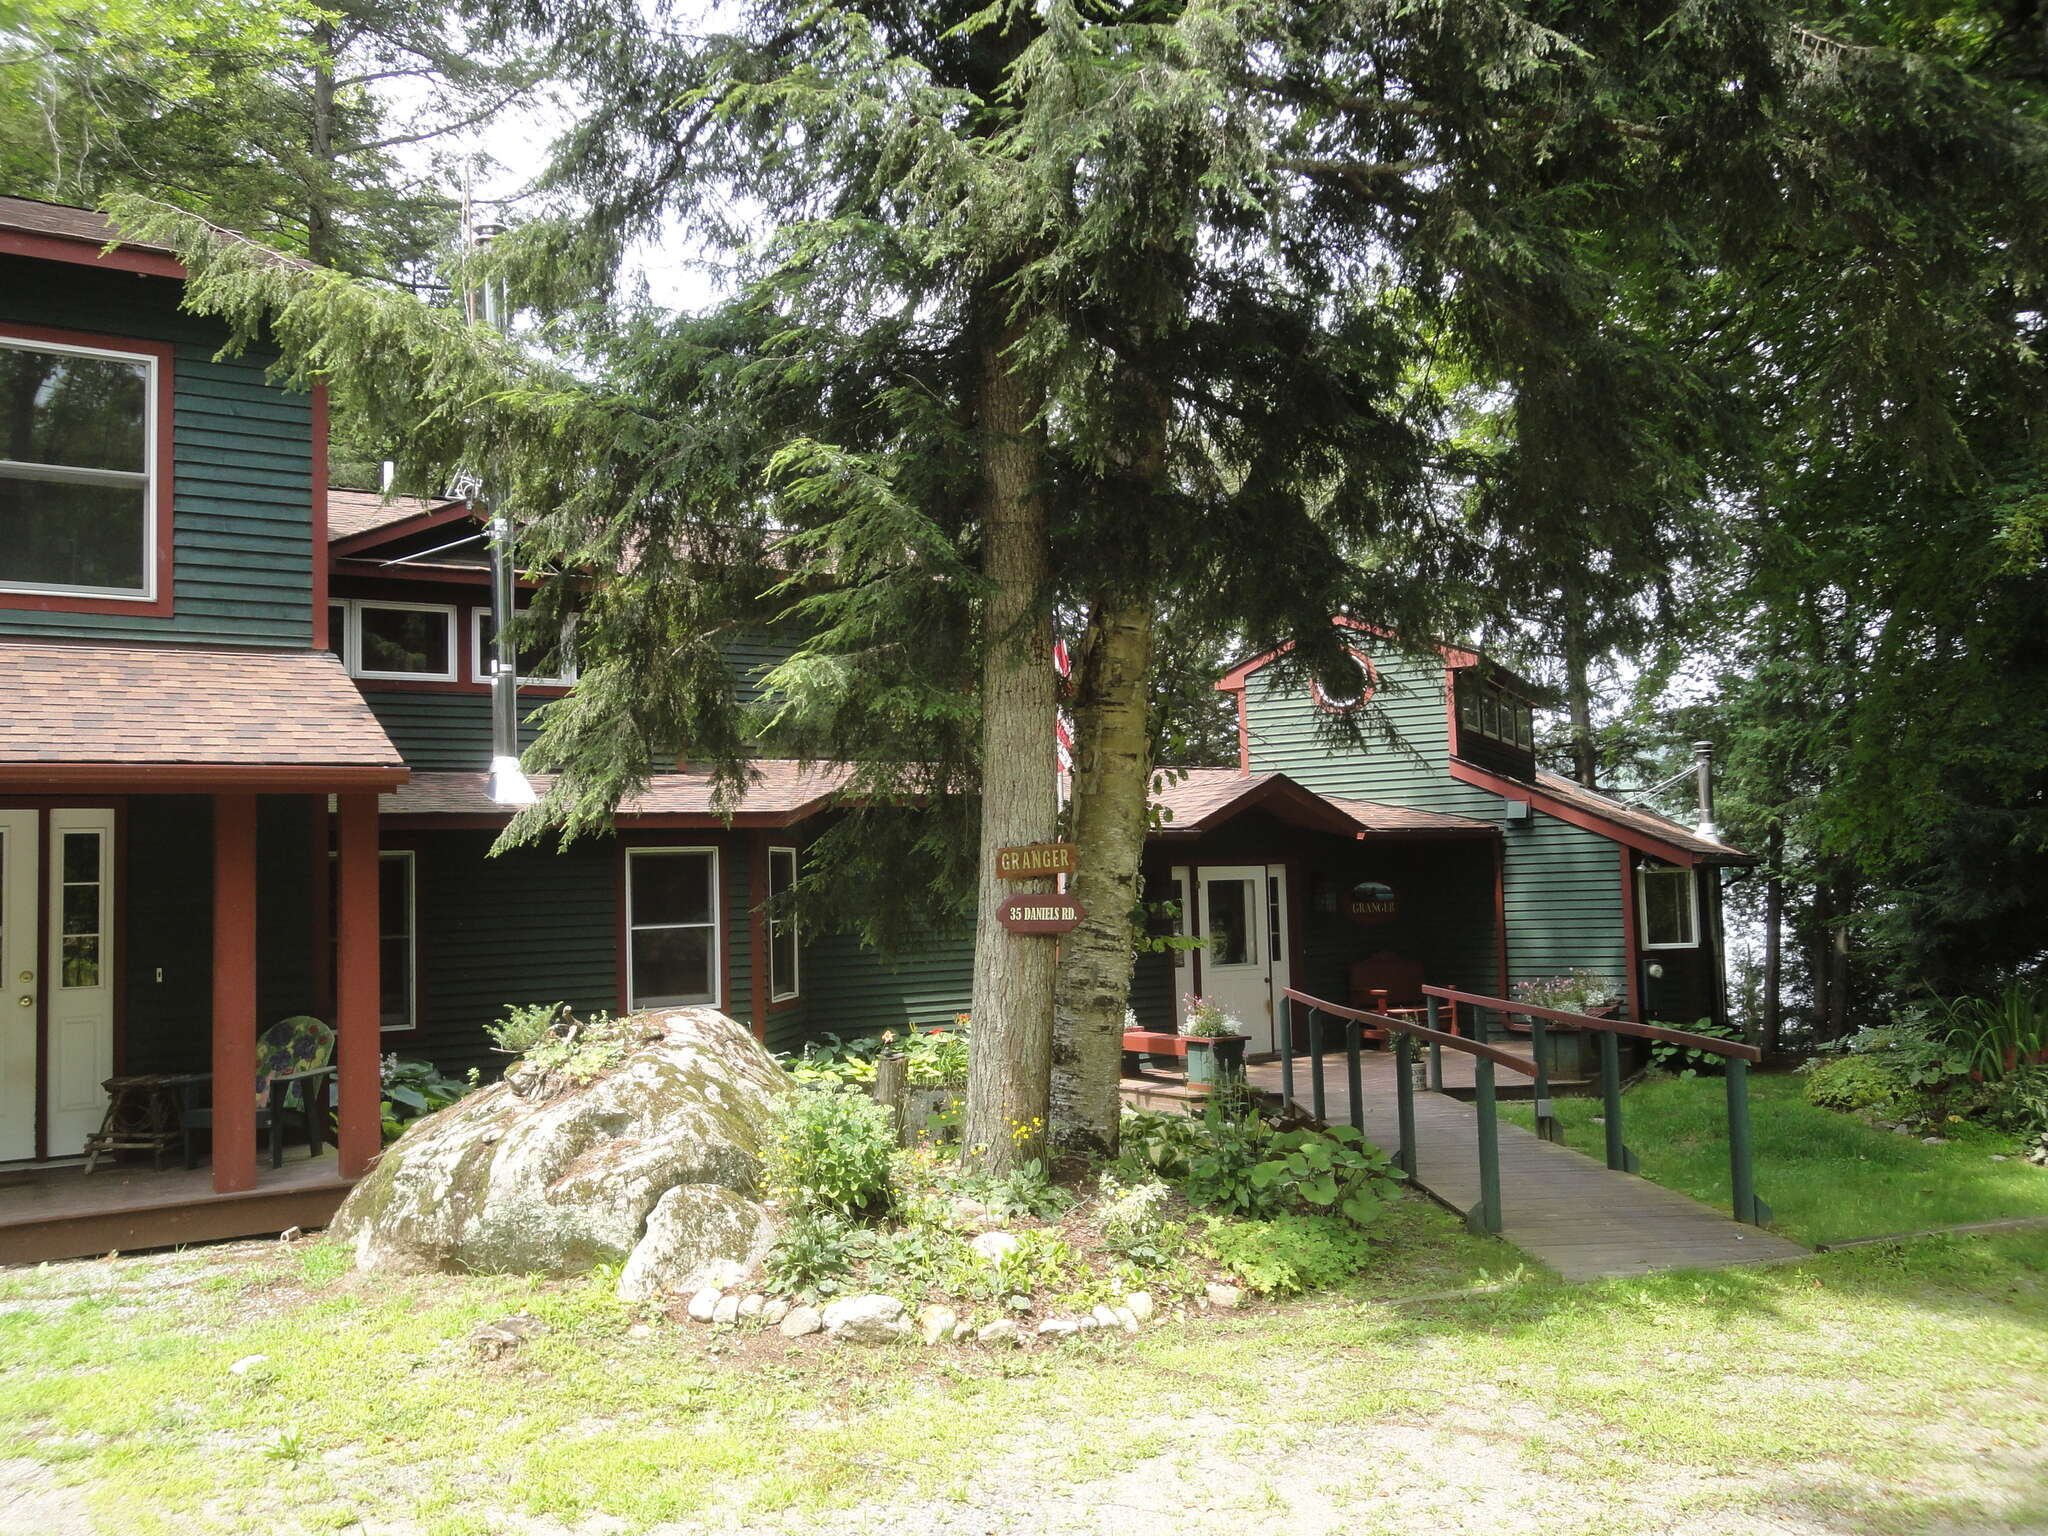 Vacation Property for Sale at 35 Daniels Rd Schroon Lake, New York 12870 United States